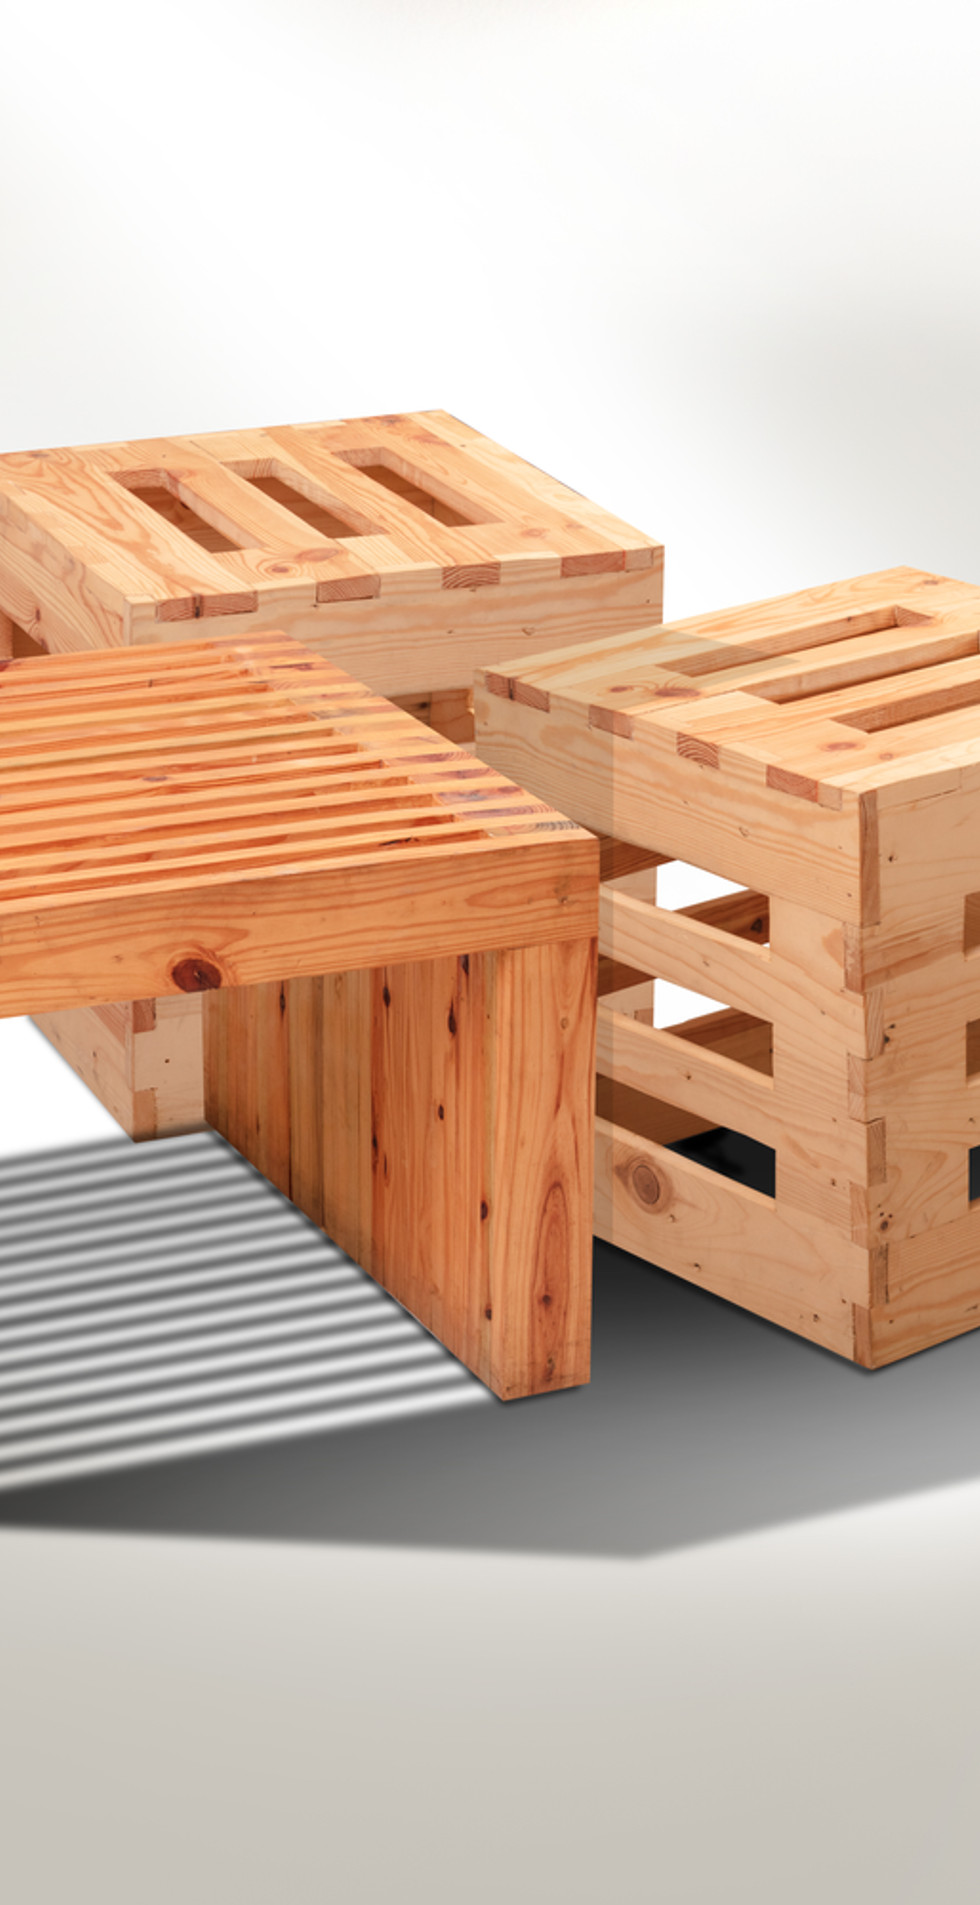 CUBE STOOLS & TABLE